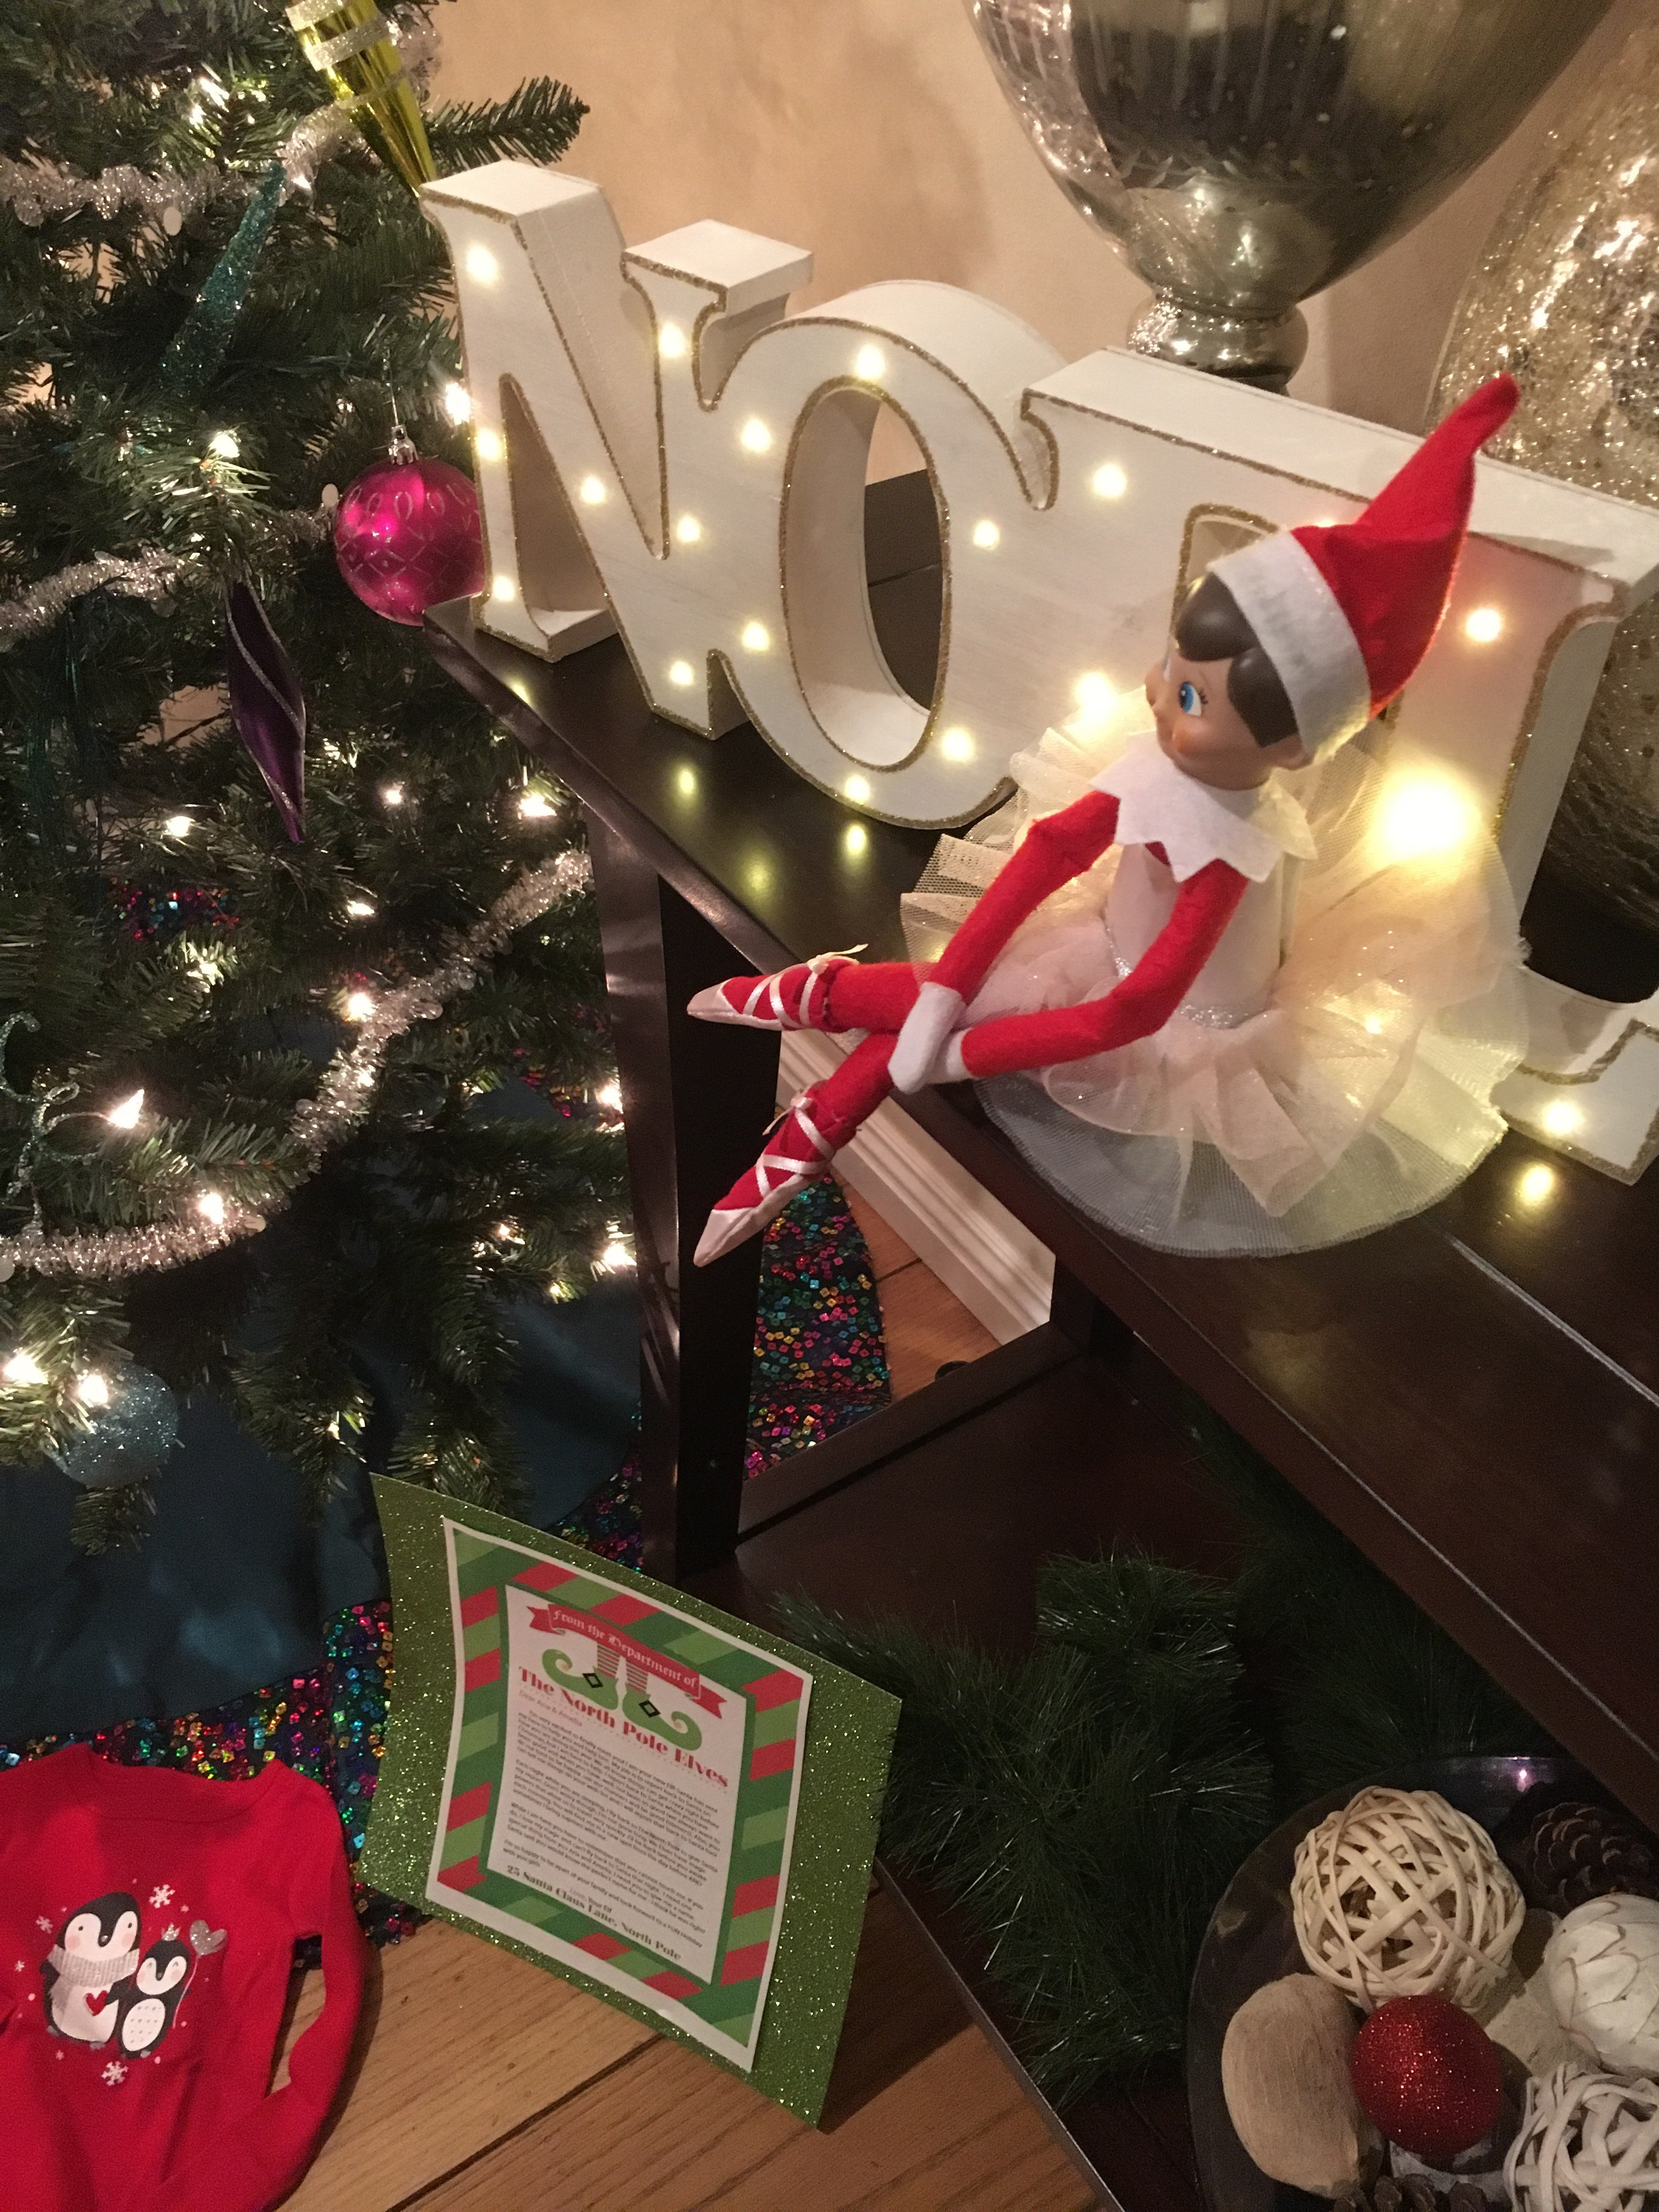 Getting started with elf on the shelf ideas | elf on the shelf welcome letter | Christmas decorating